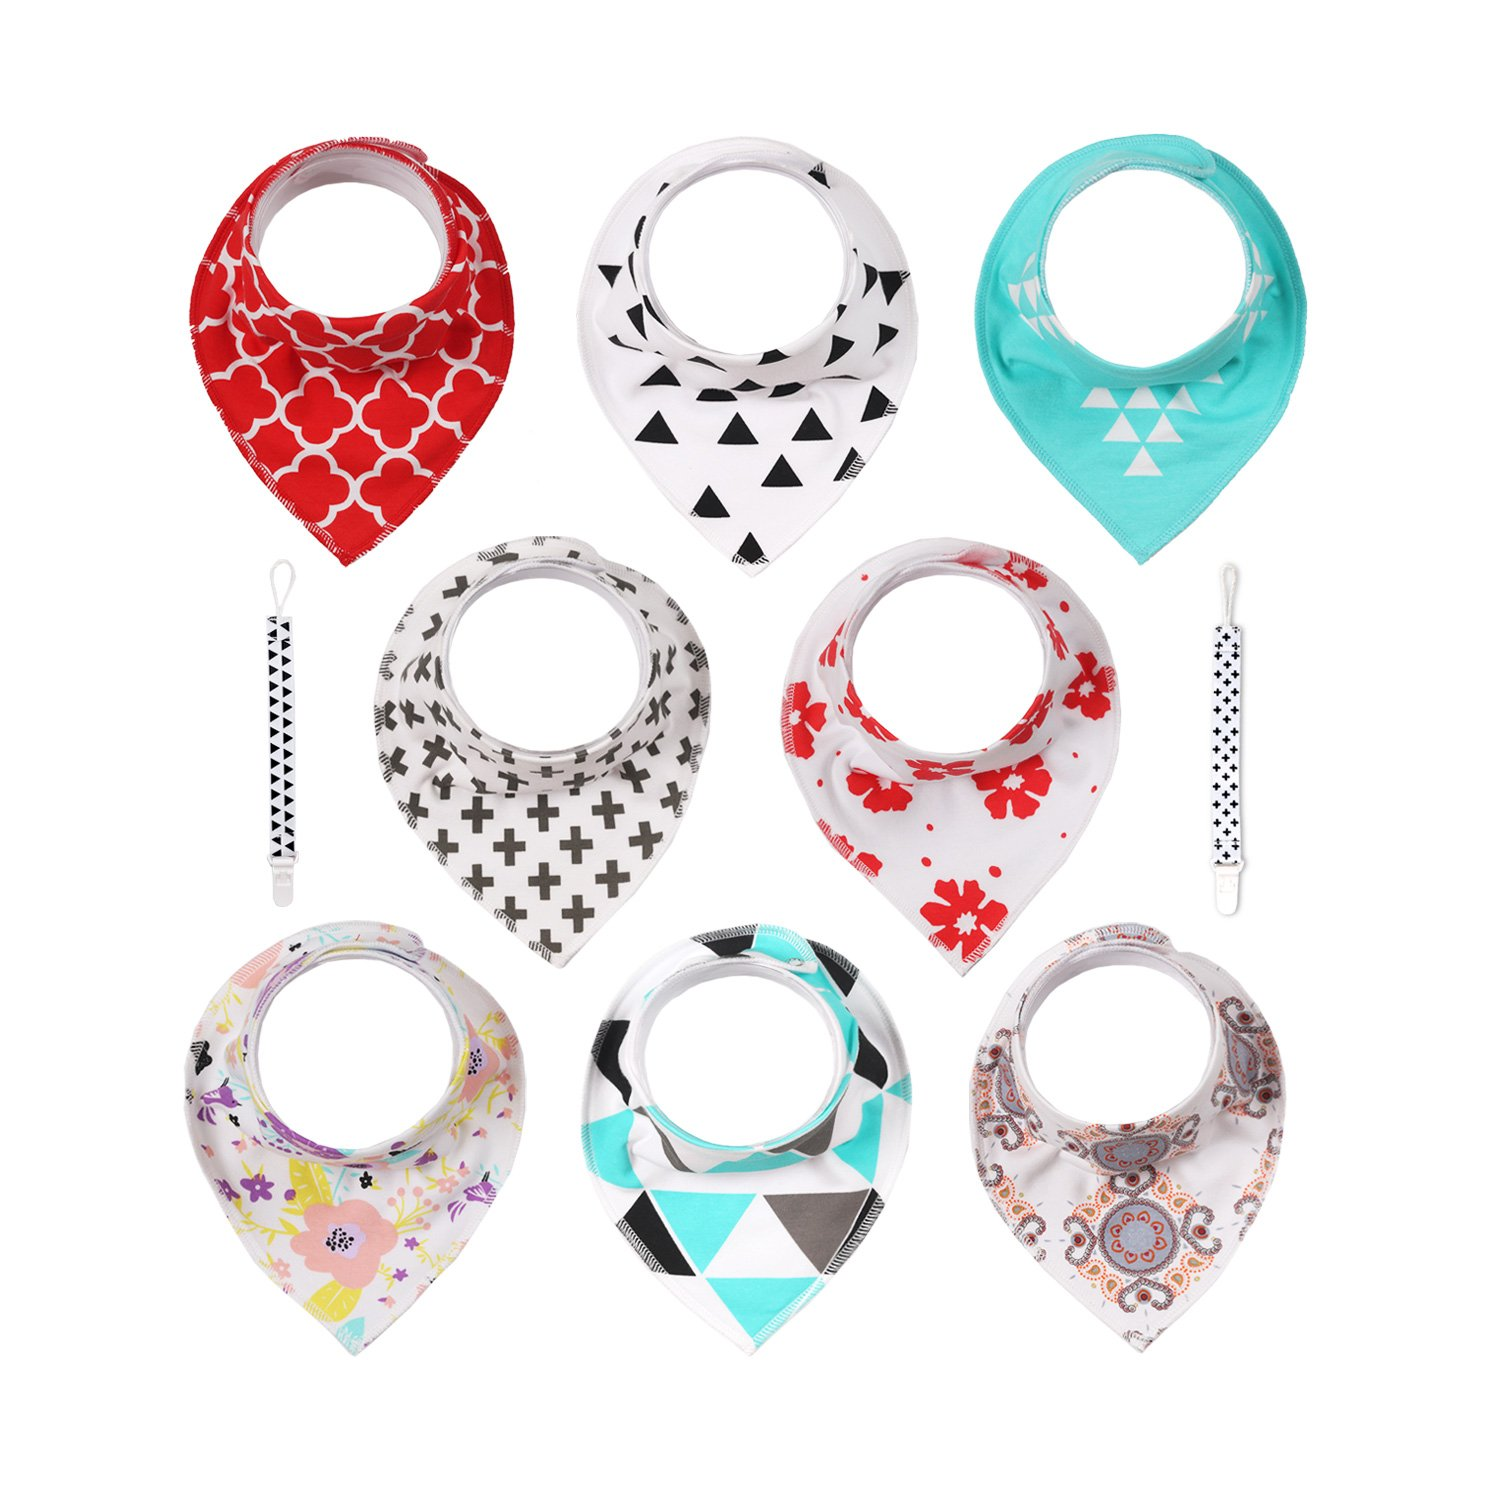 Baby Bandana Drool Bibs, Abestbox Pacifier Clips+Baby Drooling and Teething Bibs